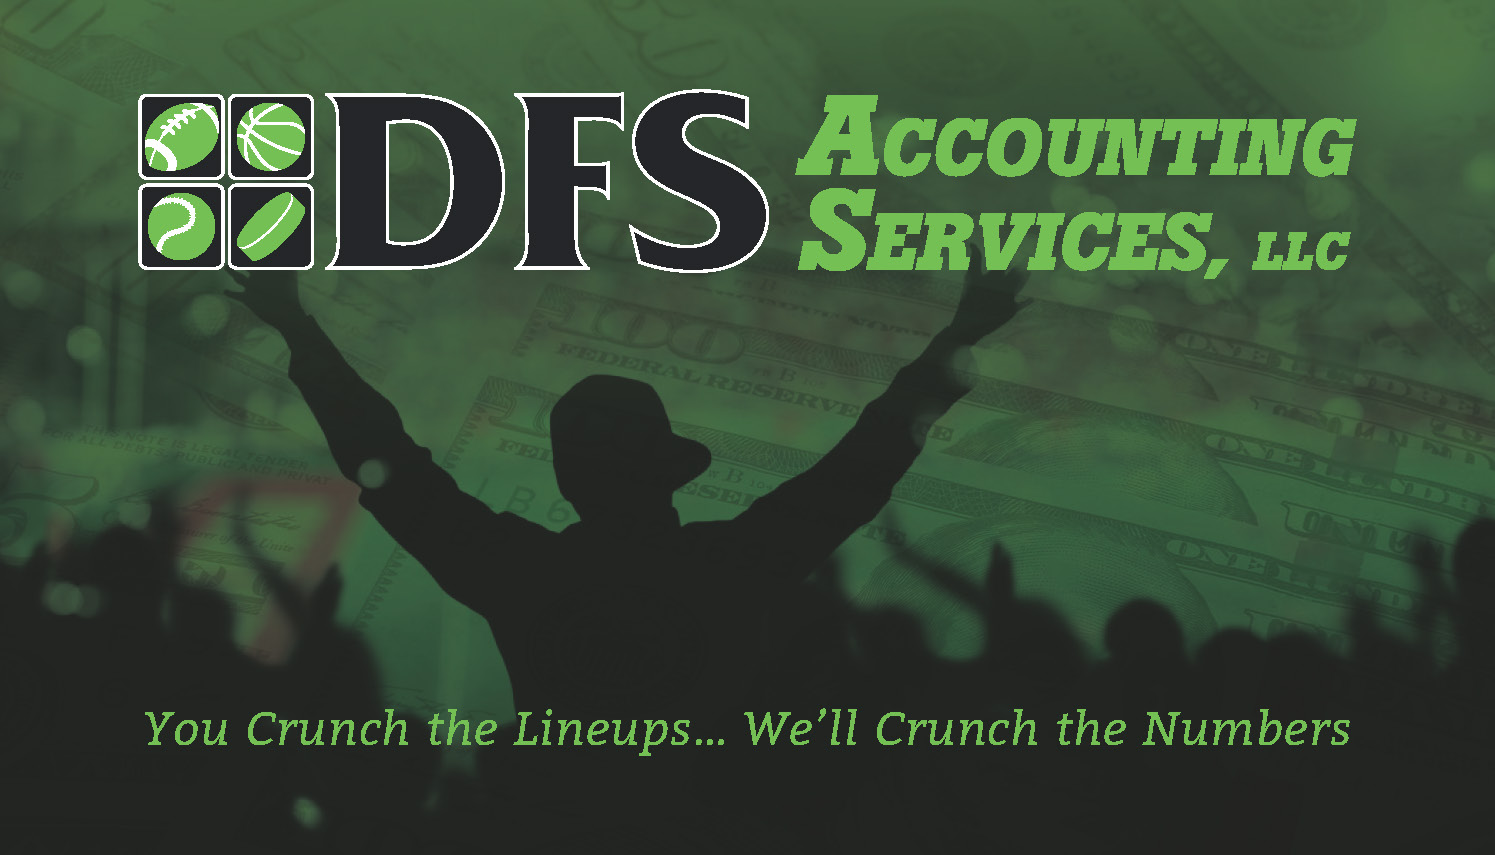 DFS_Accounting_Services_BC_Page_1.jpg